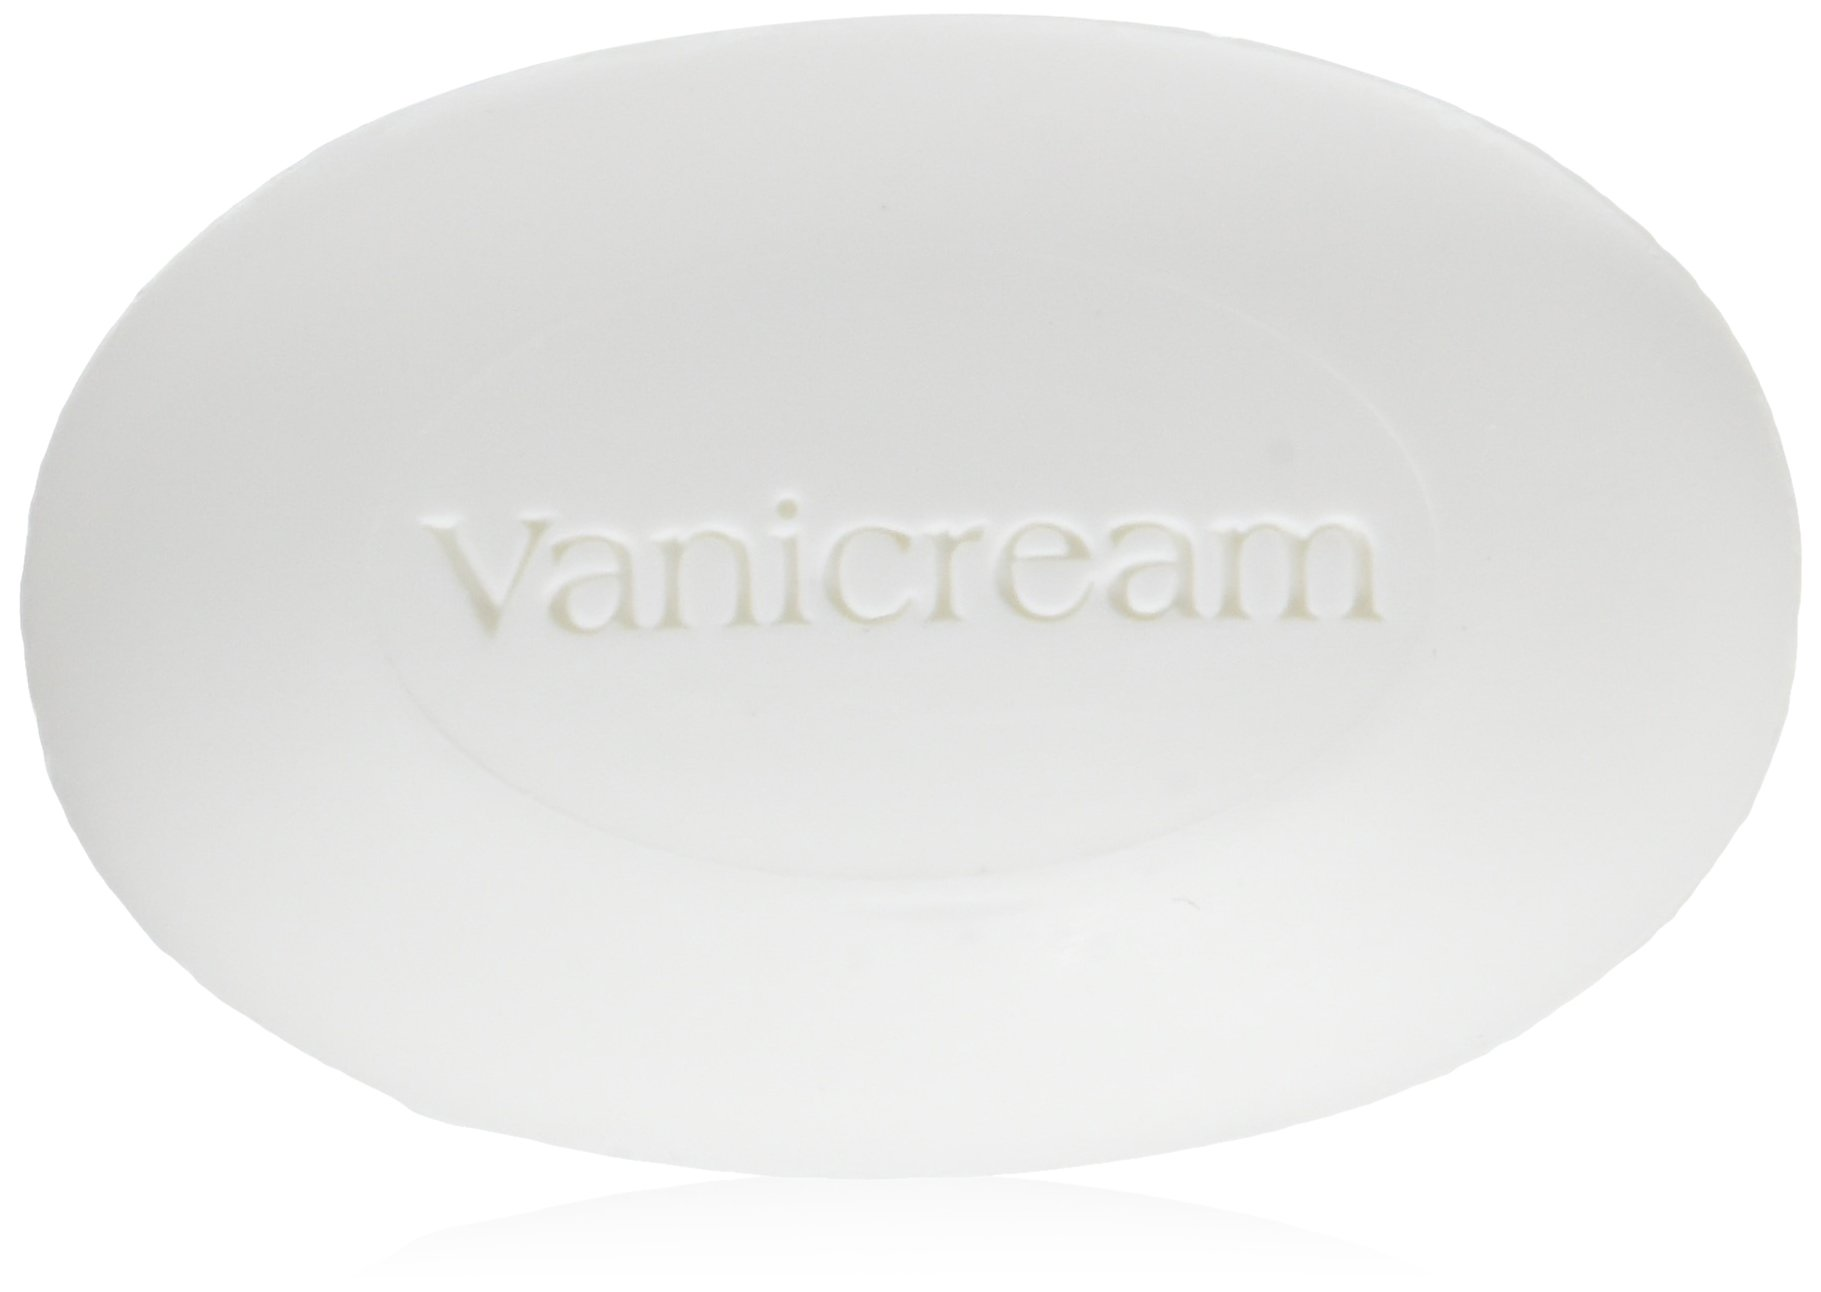 Vanicream Cleansing Bar for sensitive skin - gently cleanses and moisturizes - fragrance free, preservative free - 3.9 Ounce (pack of 12)